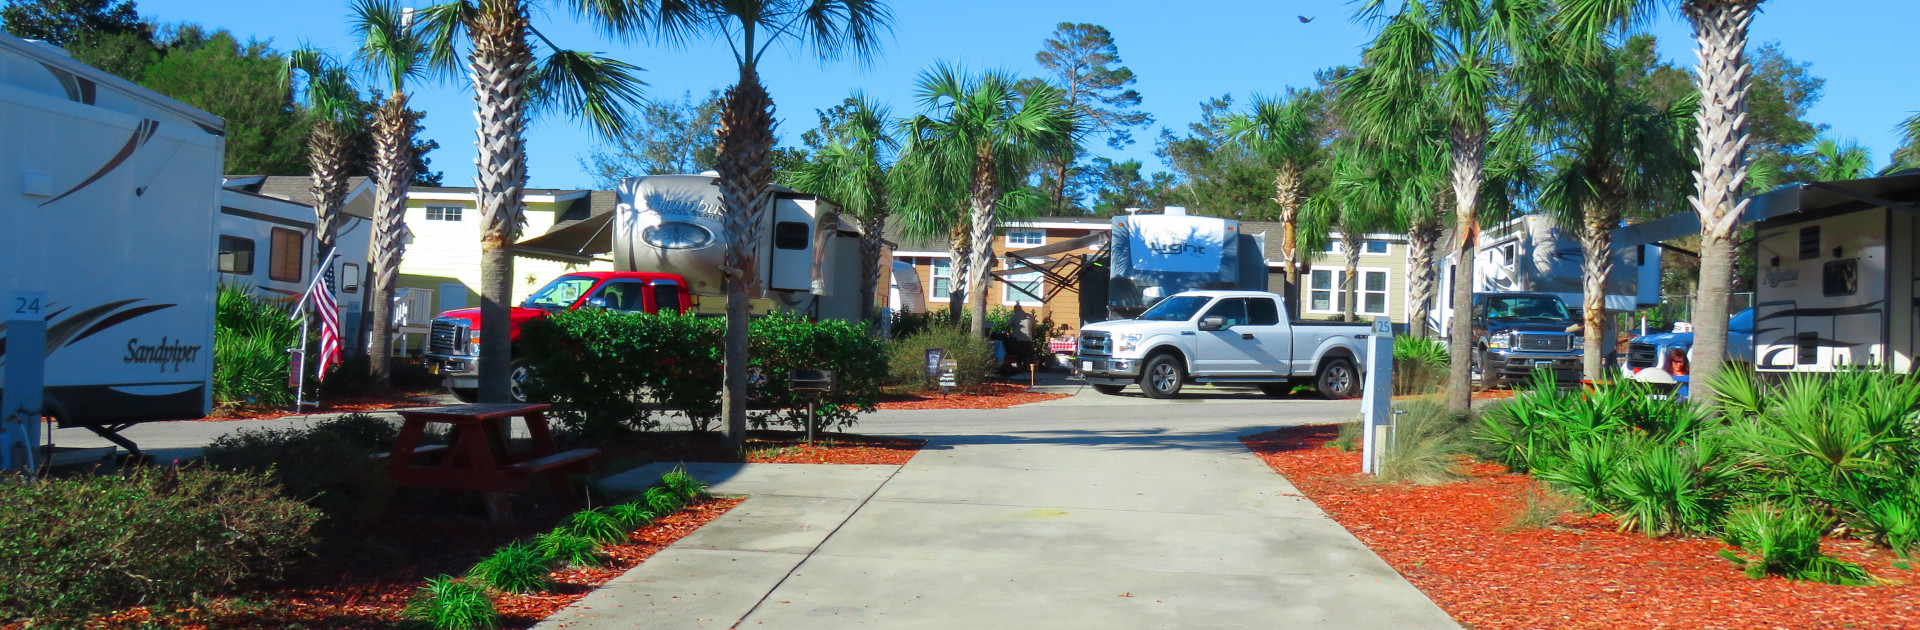 Carrabelle Beach RV Resort Sites